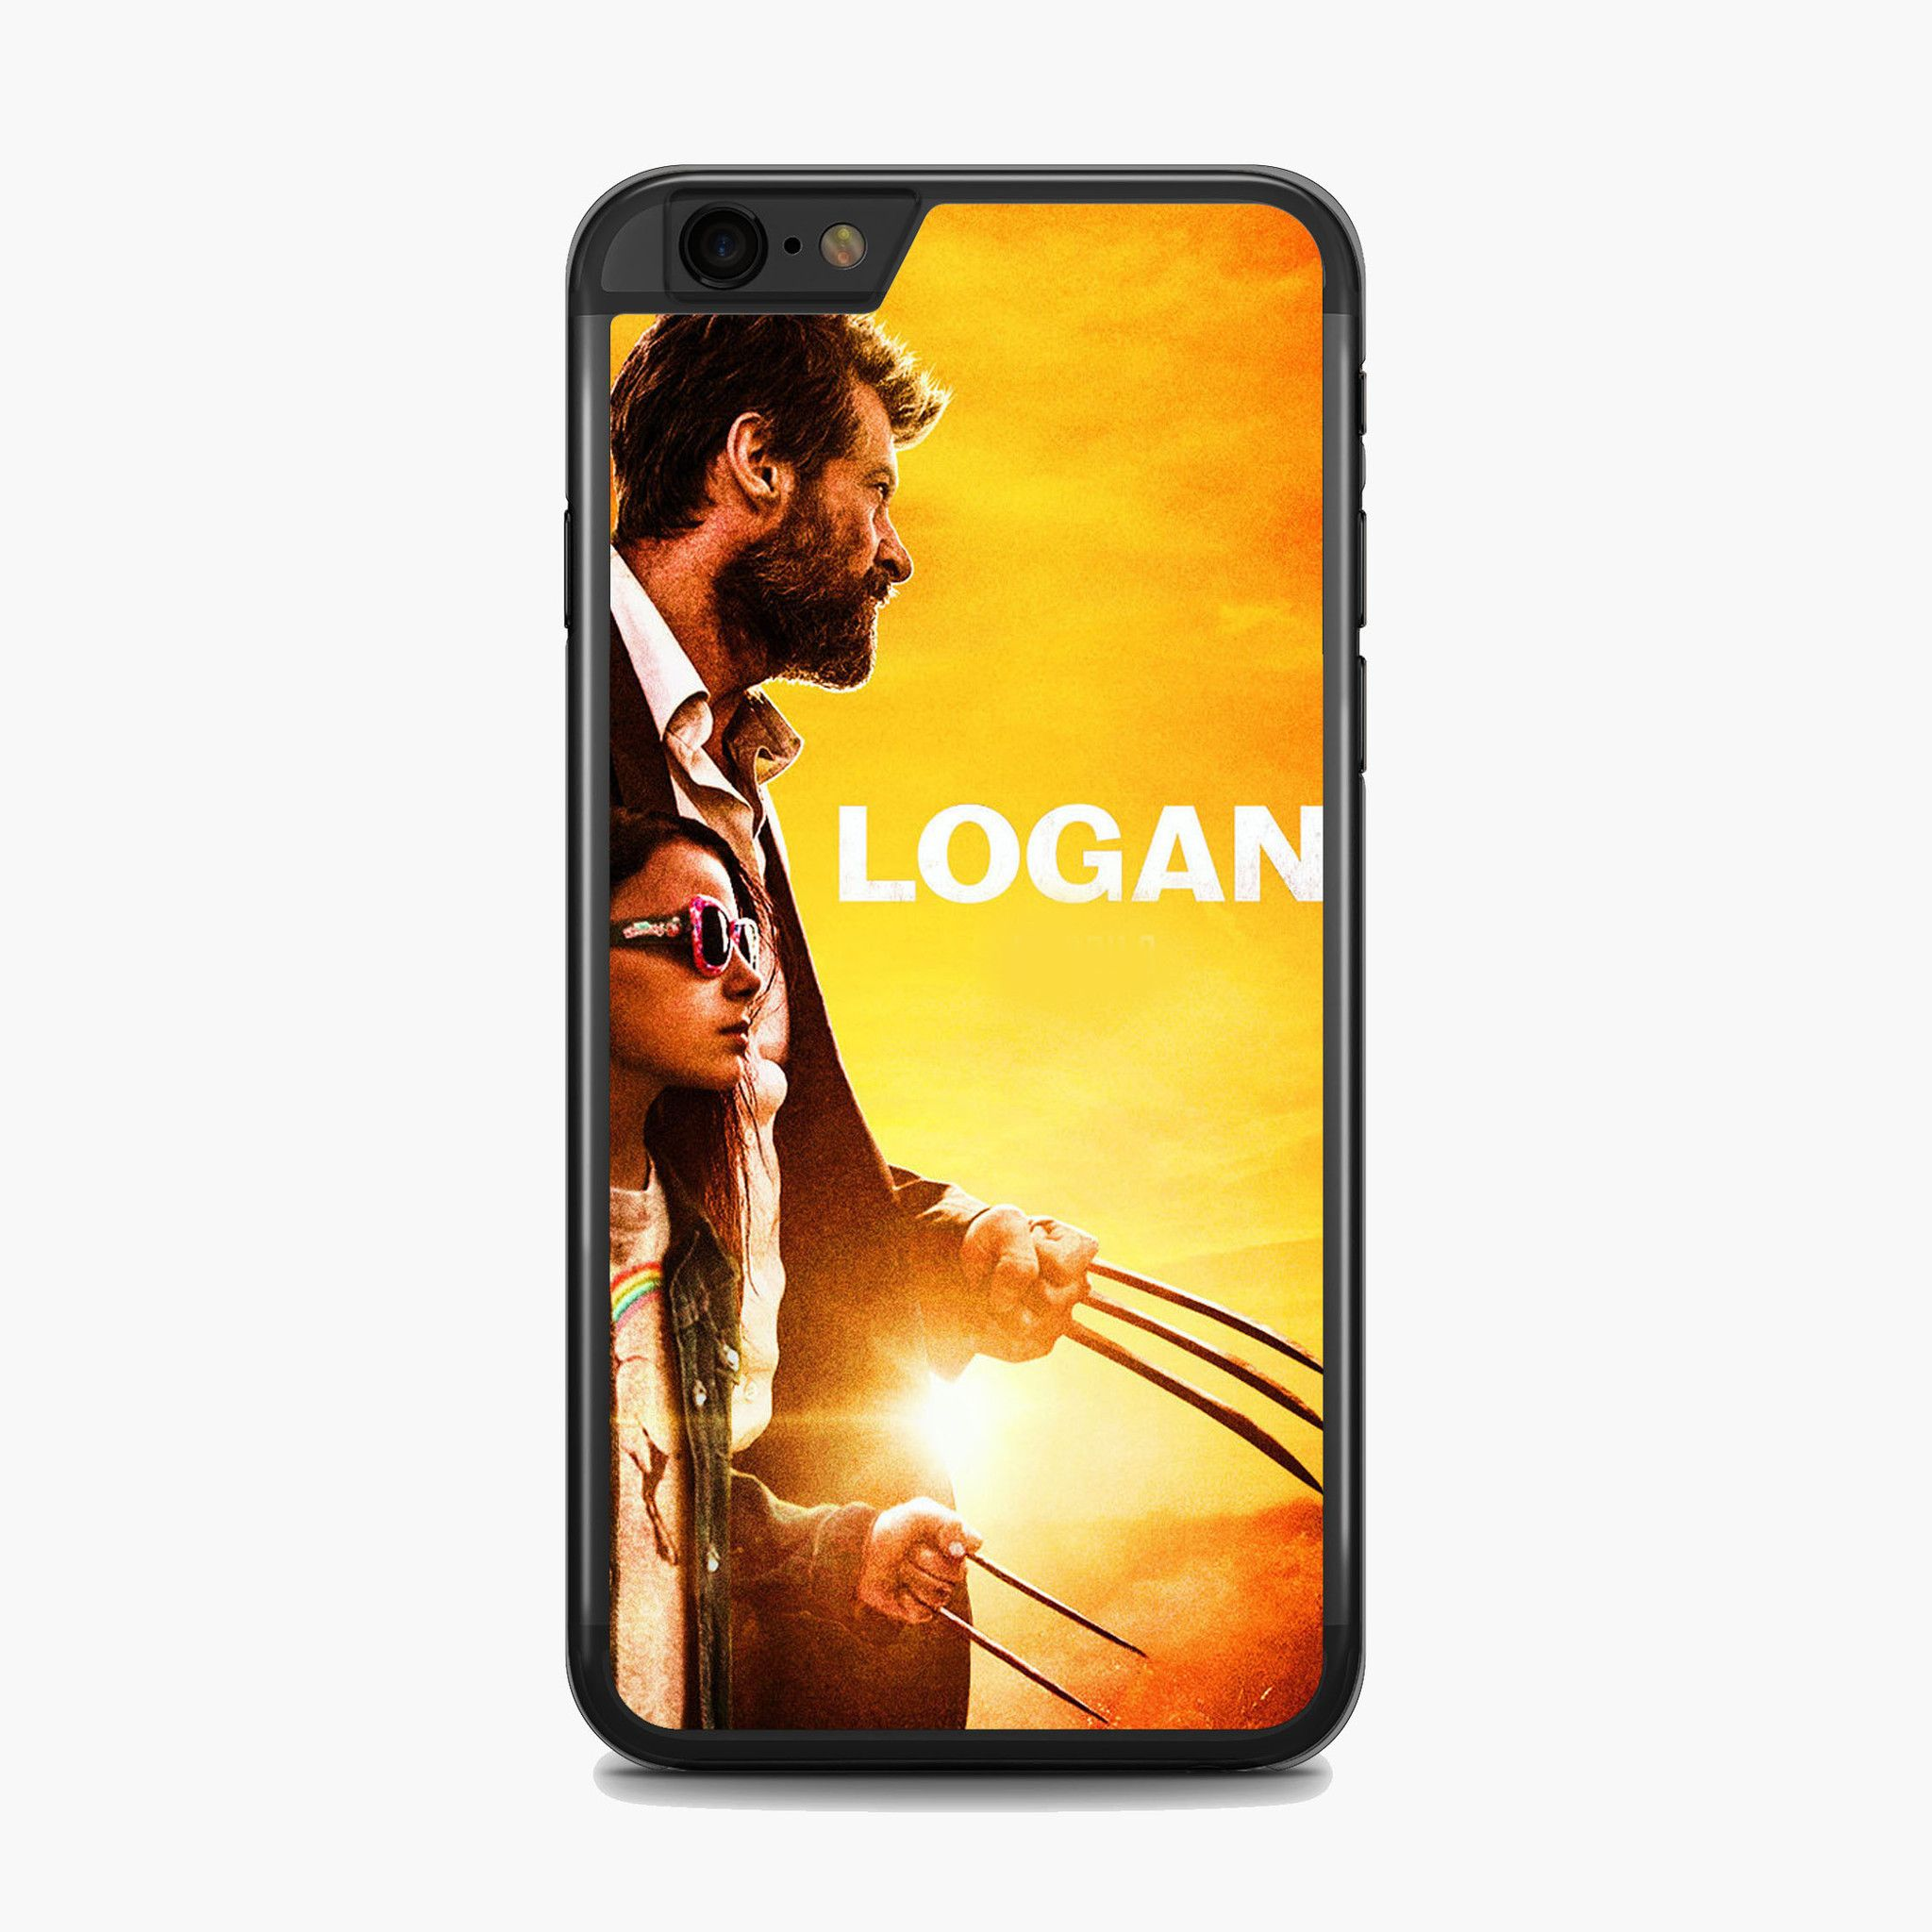 Logan iPhone Case is now available on #casesity here http://www.casesity.com/products/logan-iphone-case?utm_campaign=social_autopilot&utm_source=pin&utm_medium=pin